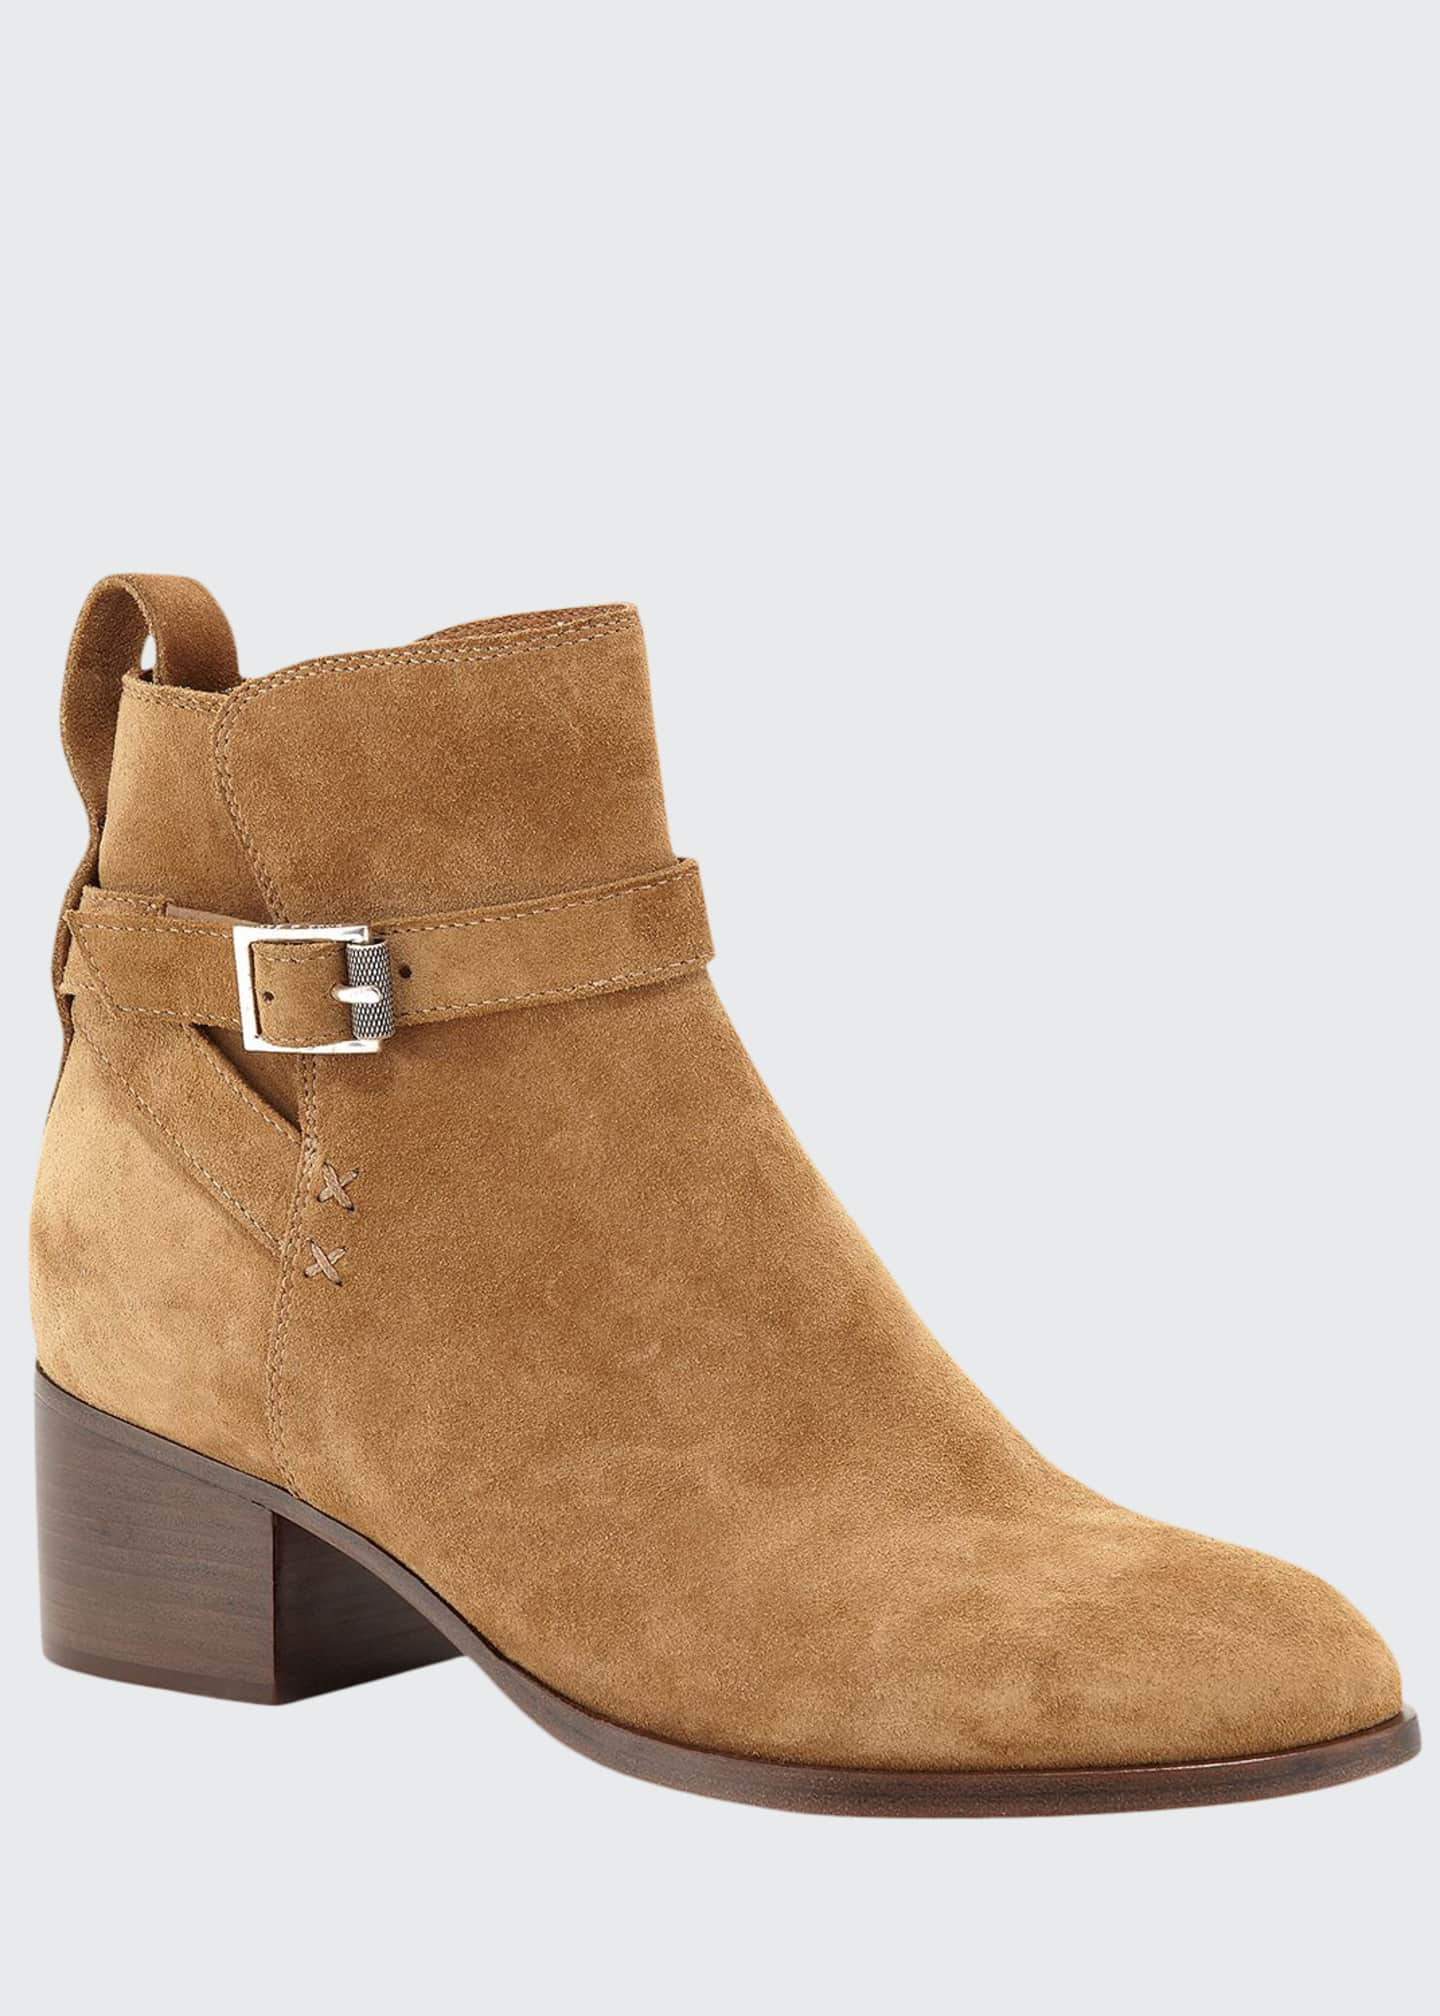 Rag & Bone Walker Buckle Suede Booties